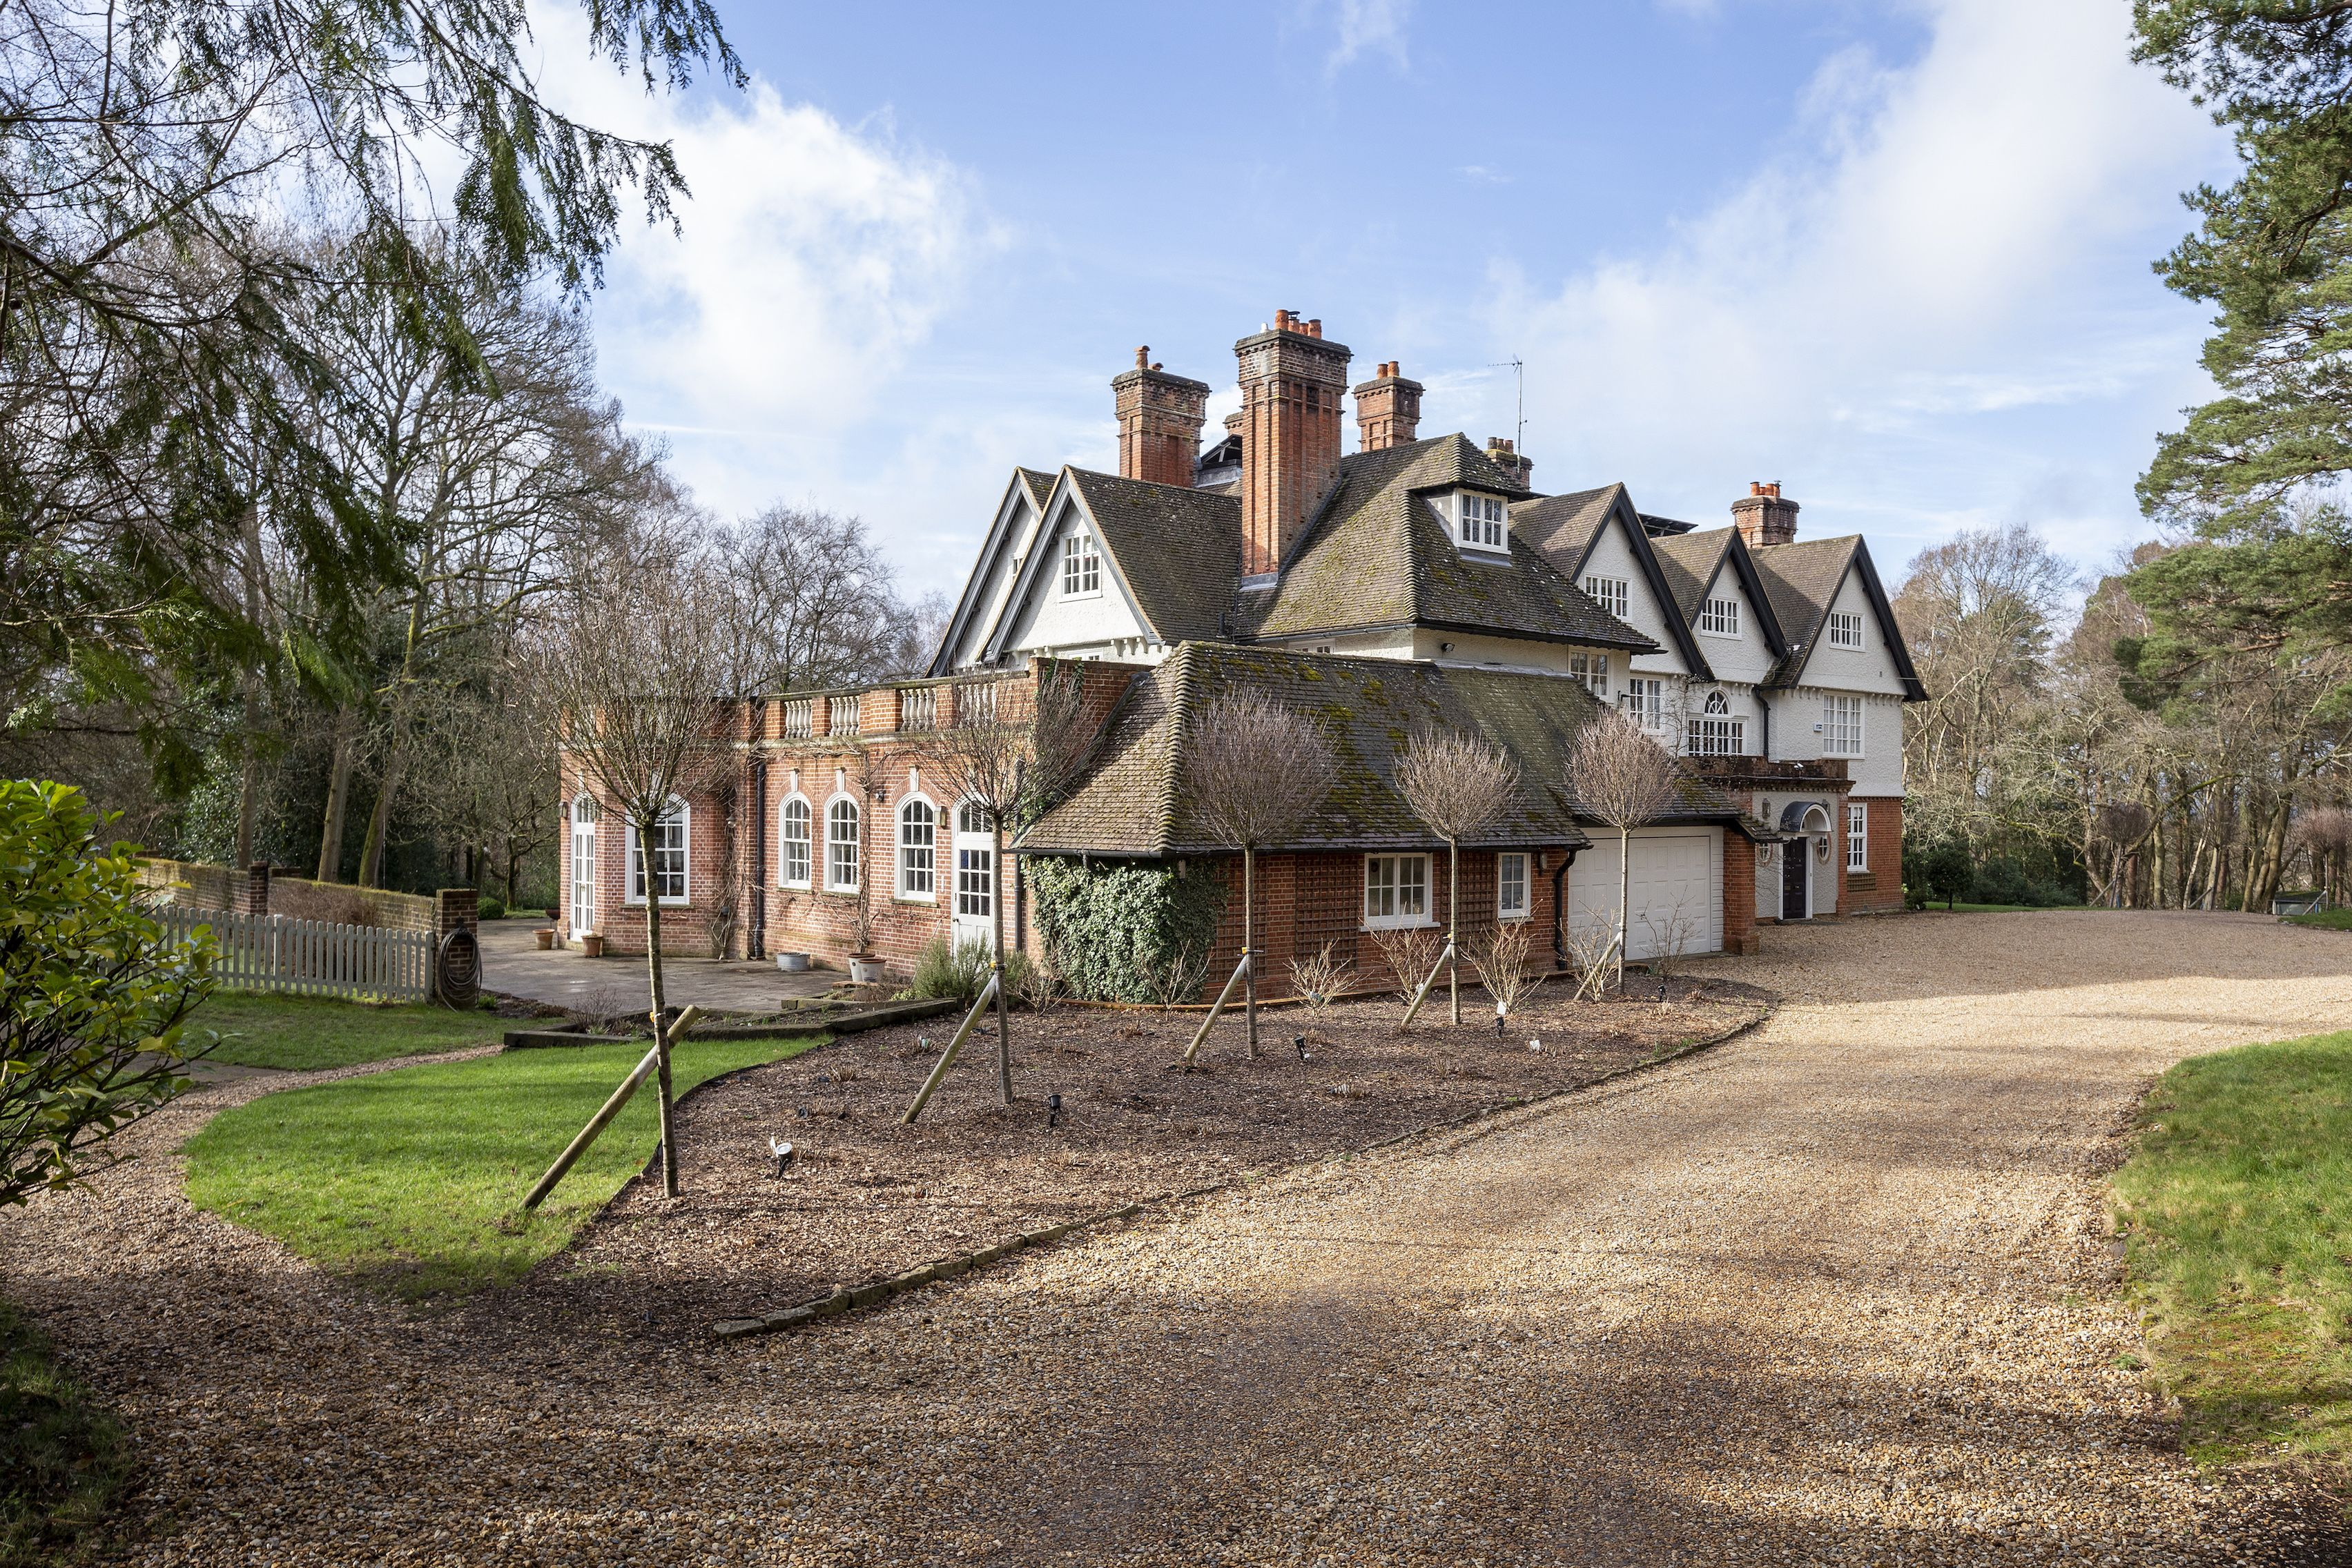 11-bedroom Hampshire home once owned by Fleetwood Mac founder for sale